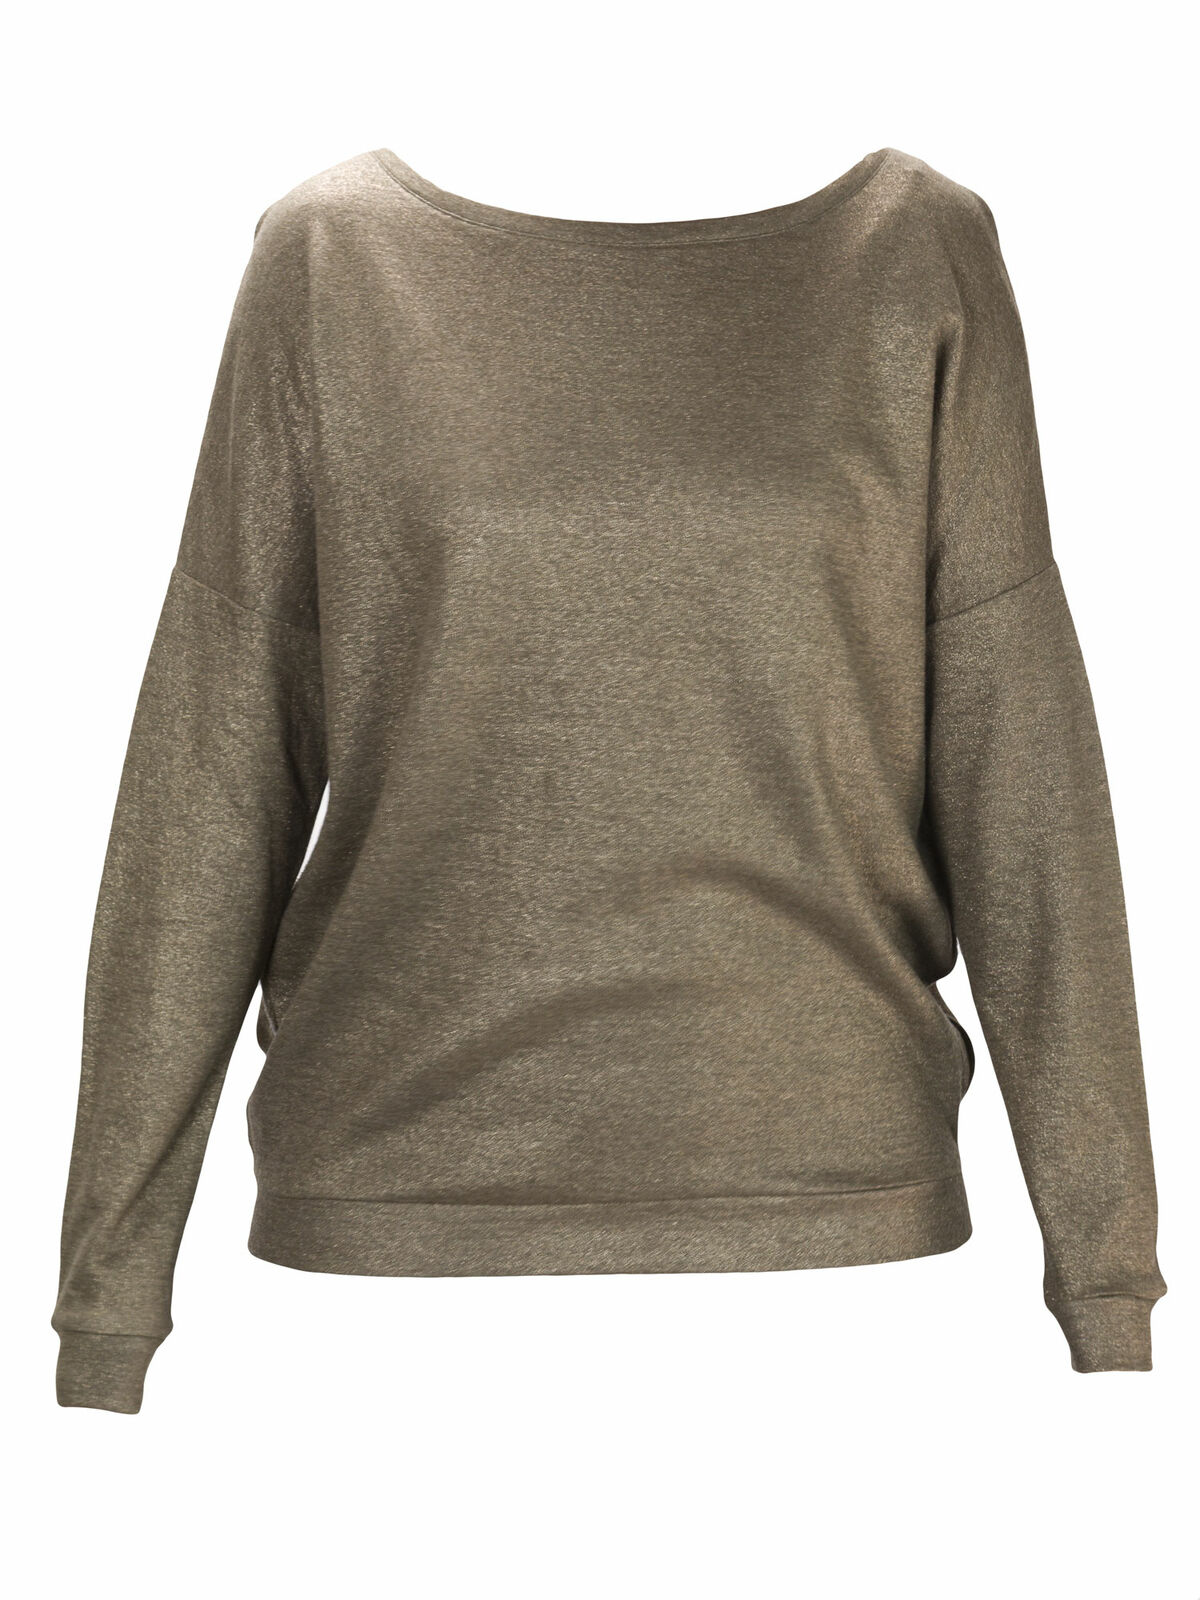 MAJESTIC FILATURES PARIS Woherren Antique Gold Metallic Sweatshirt  NWT